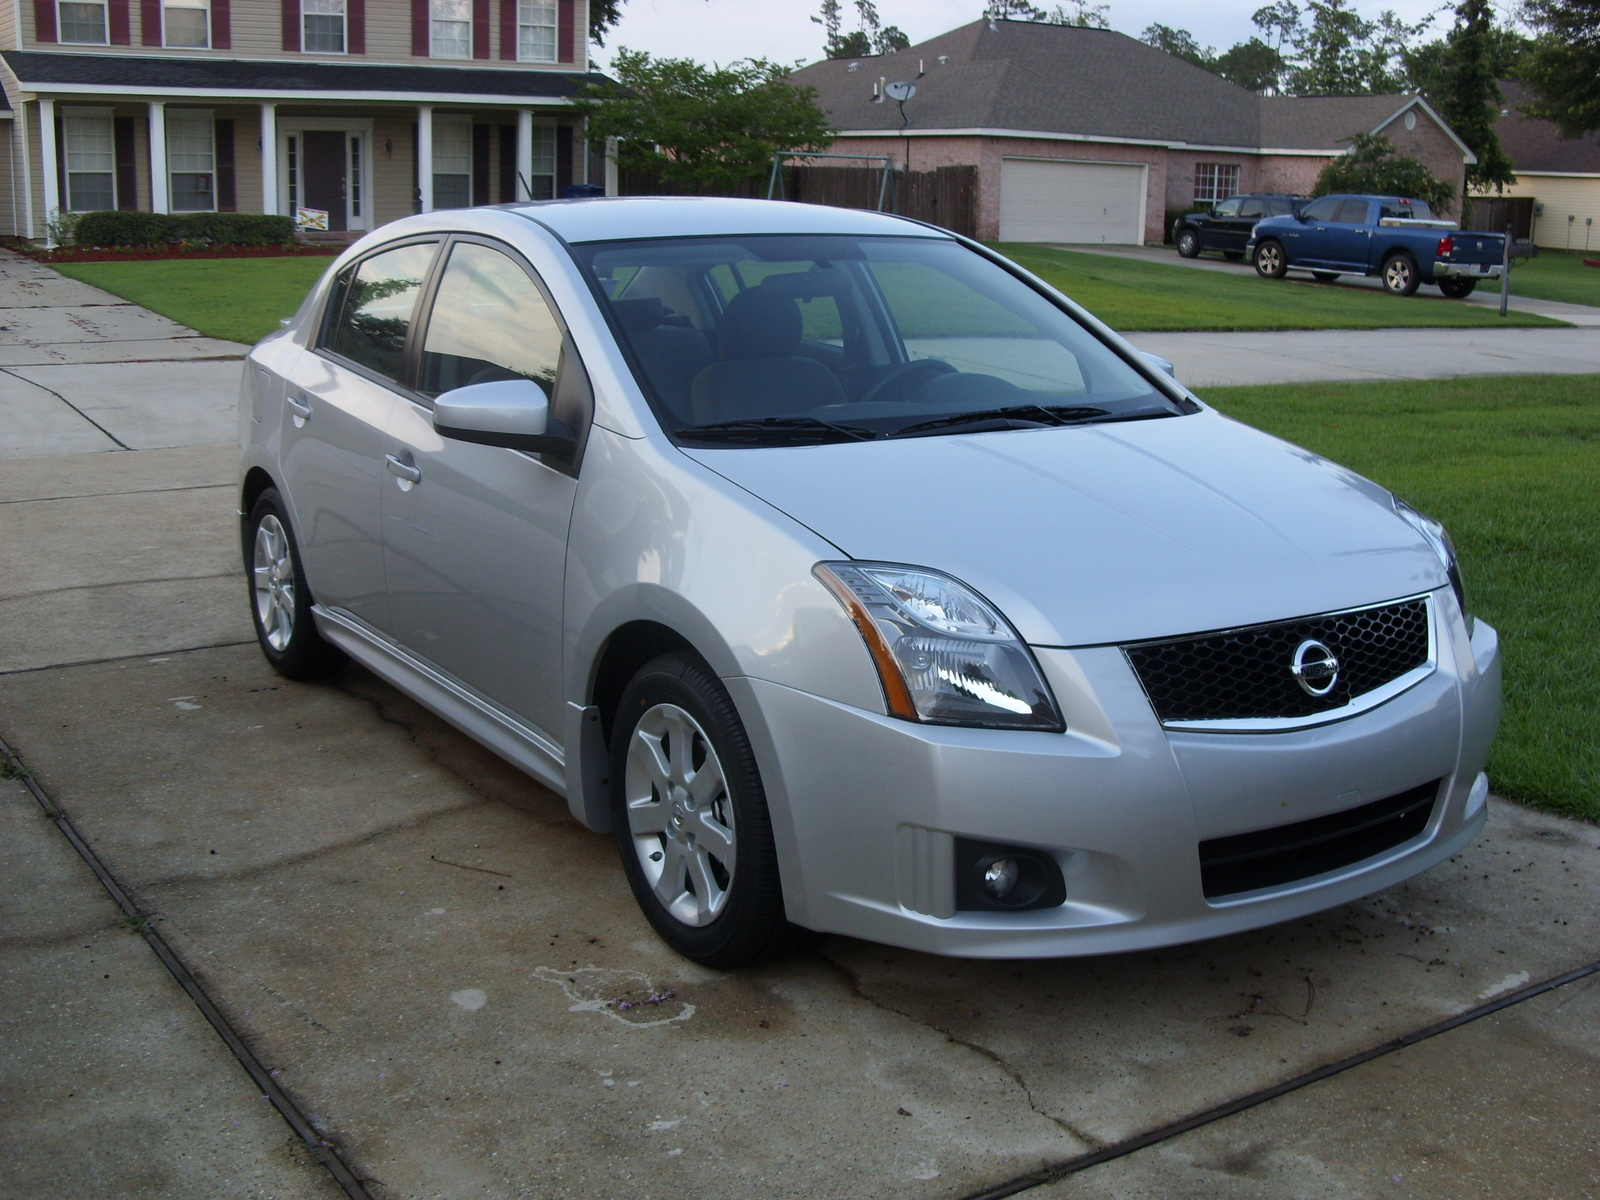 2010 nissan sentra pictures cargurus. Black Bedroom Furniture Sets. Home Design Ideas